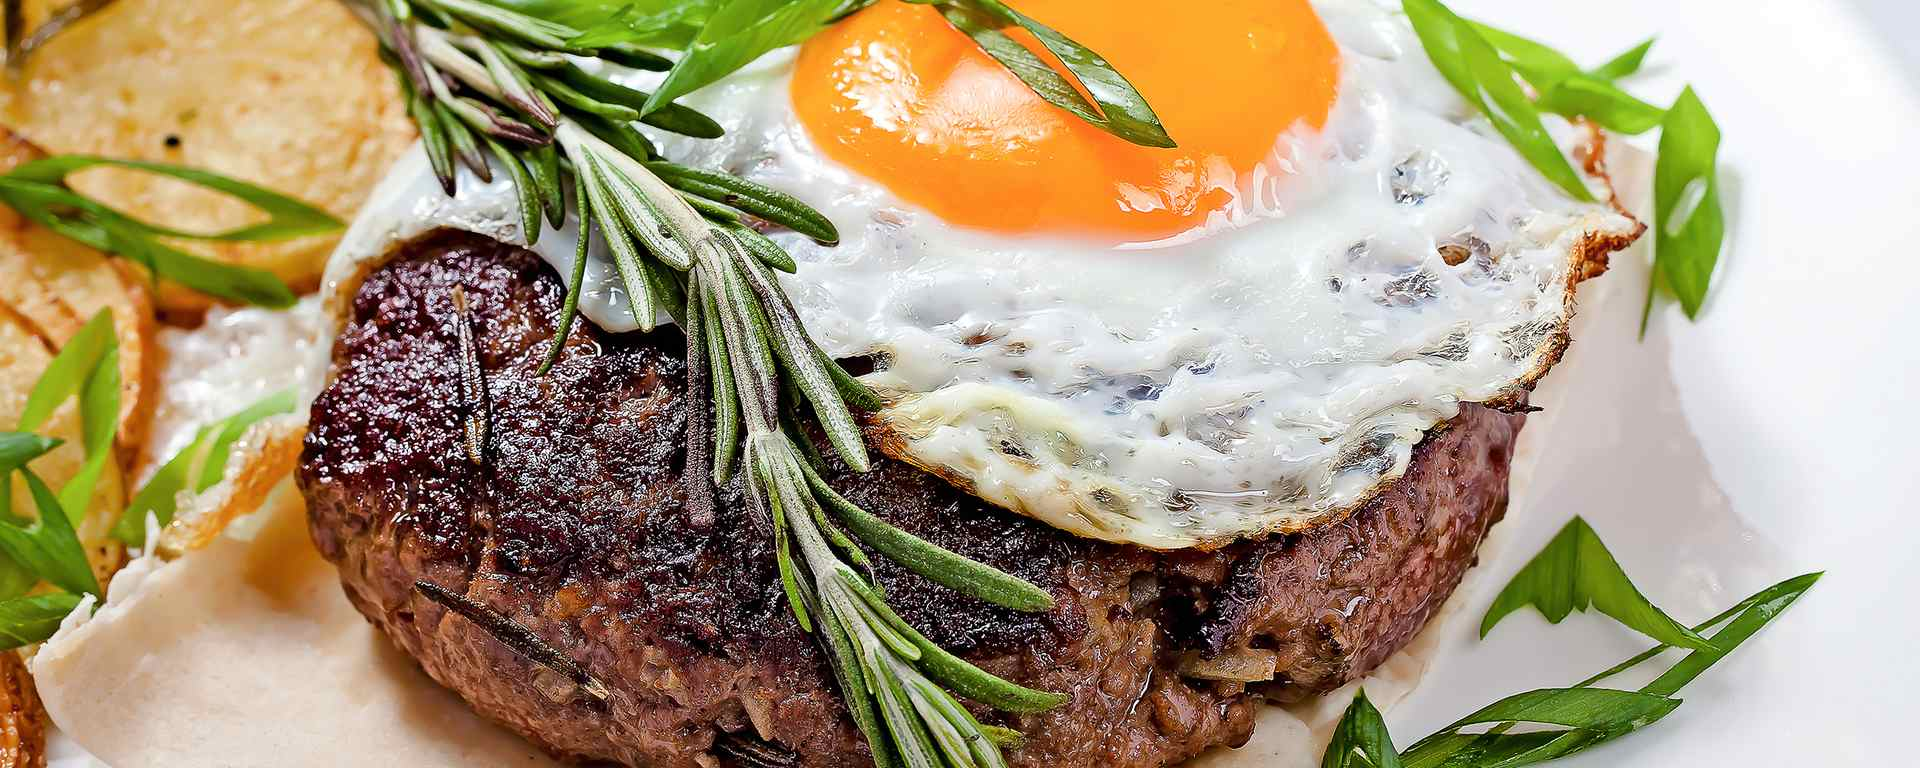 Photo for - Steak and Egg Open-Face Sandwich